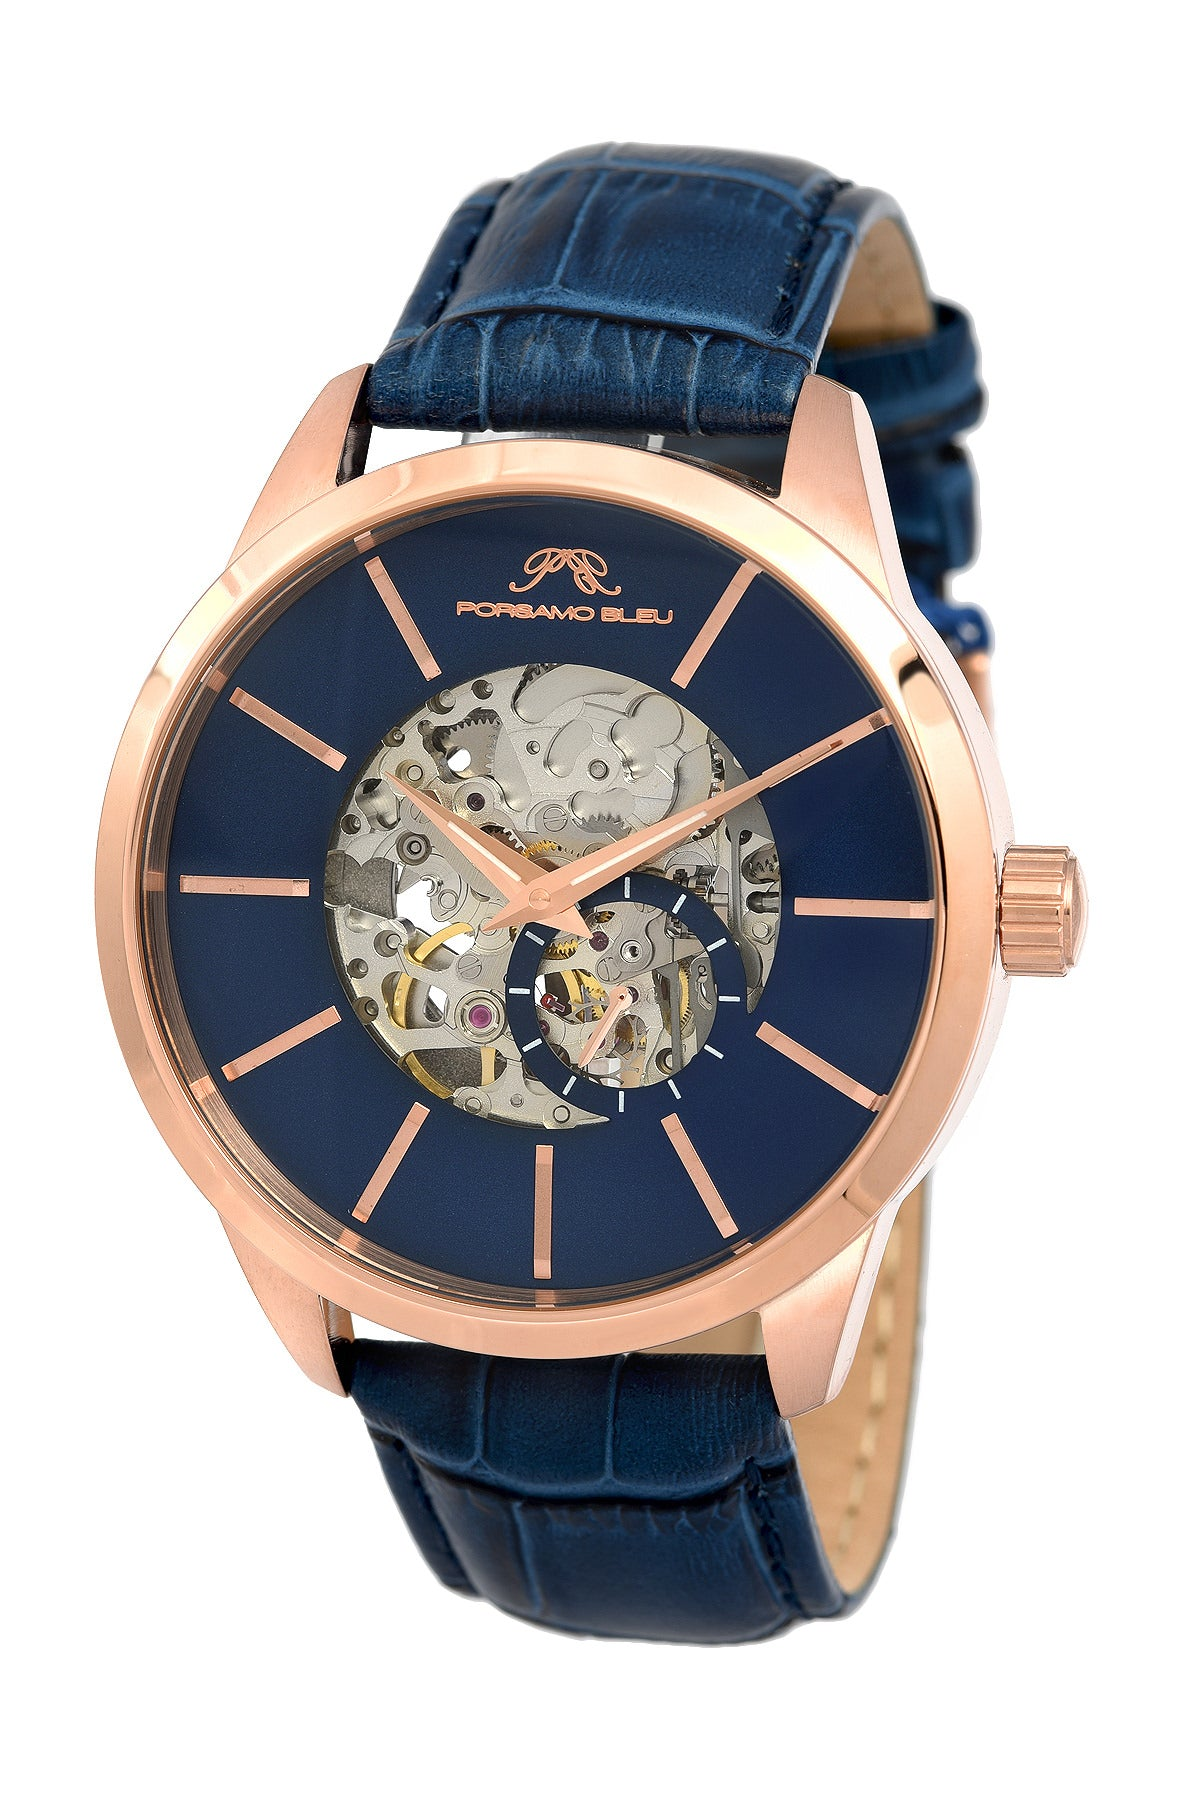 Porsamo Bleu Cassius luxury automatic men's watch, genuine leather band, rose, blue 802CCAL